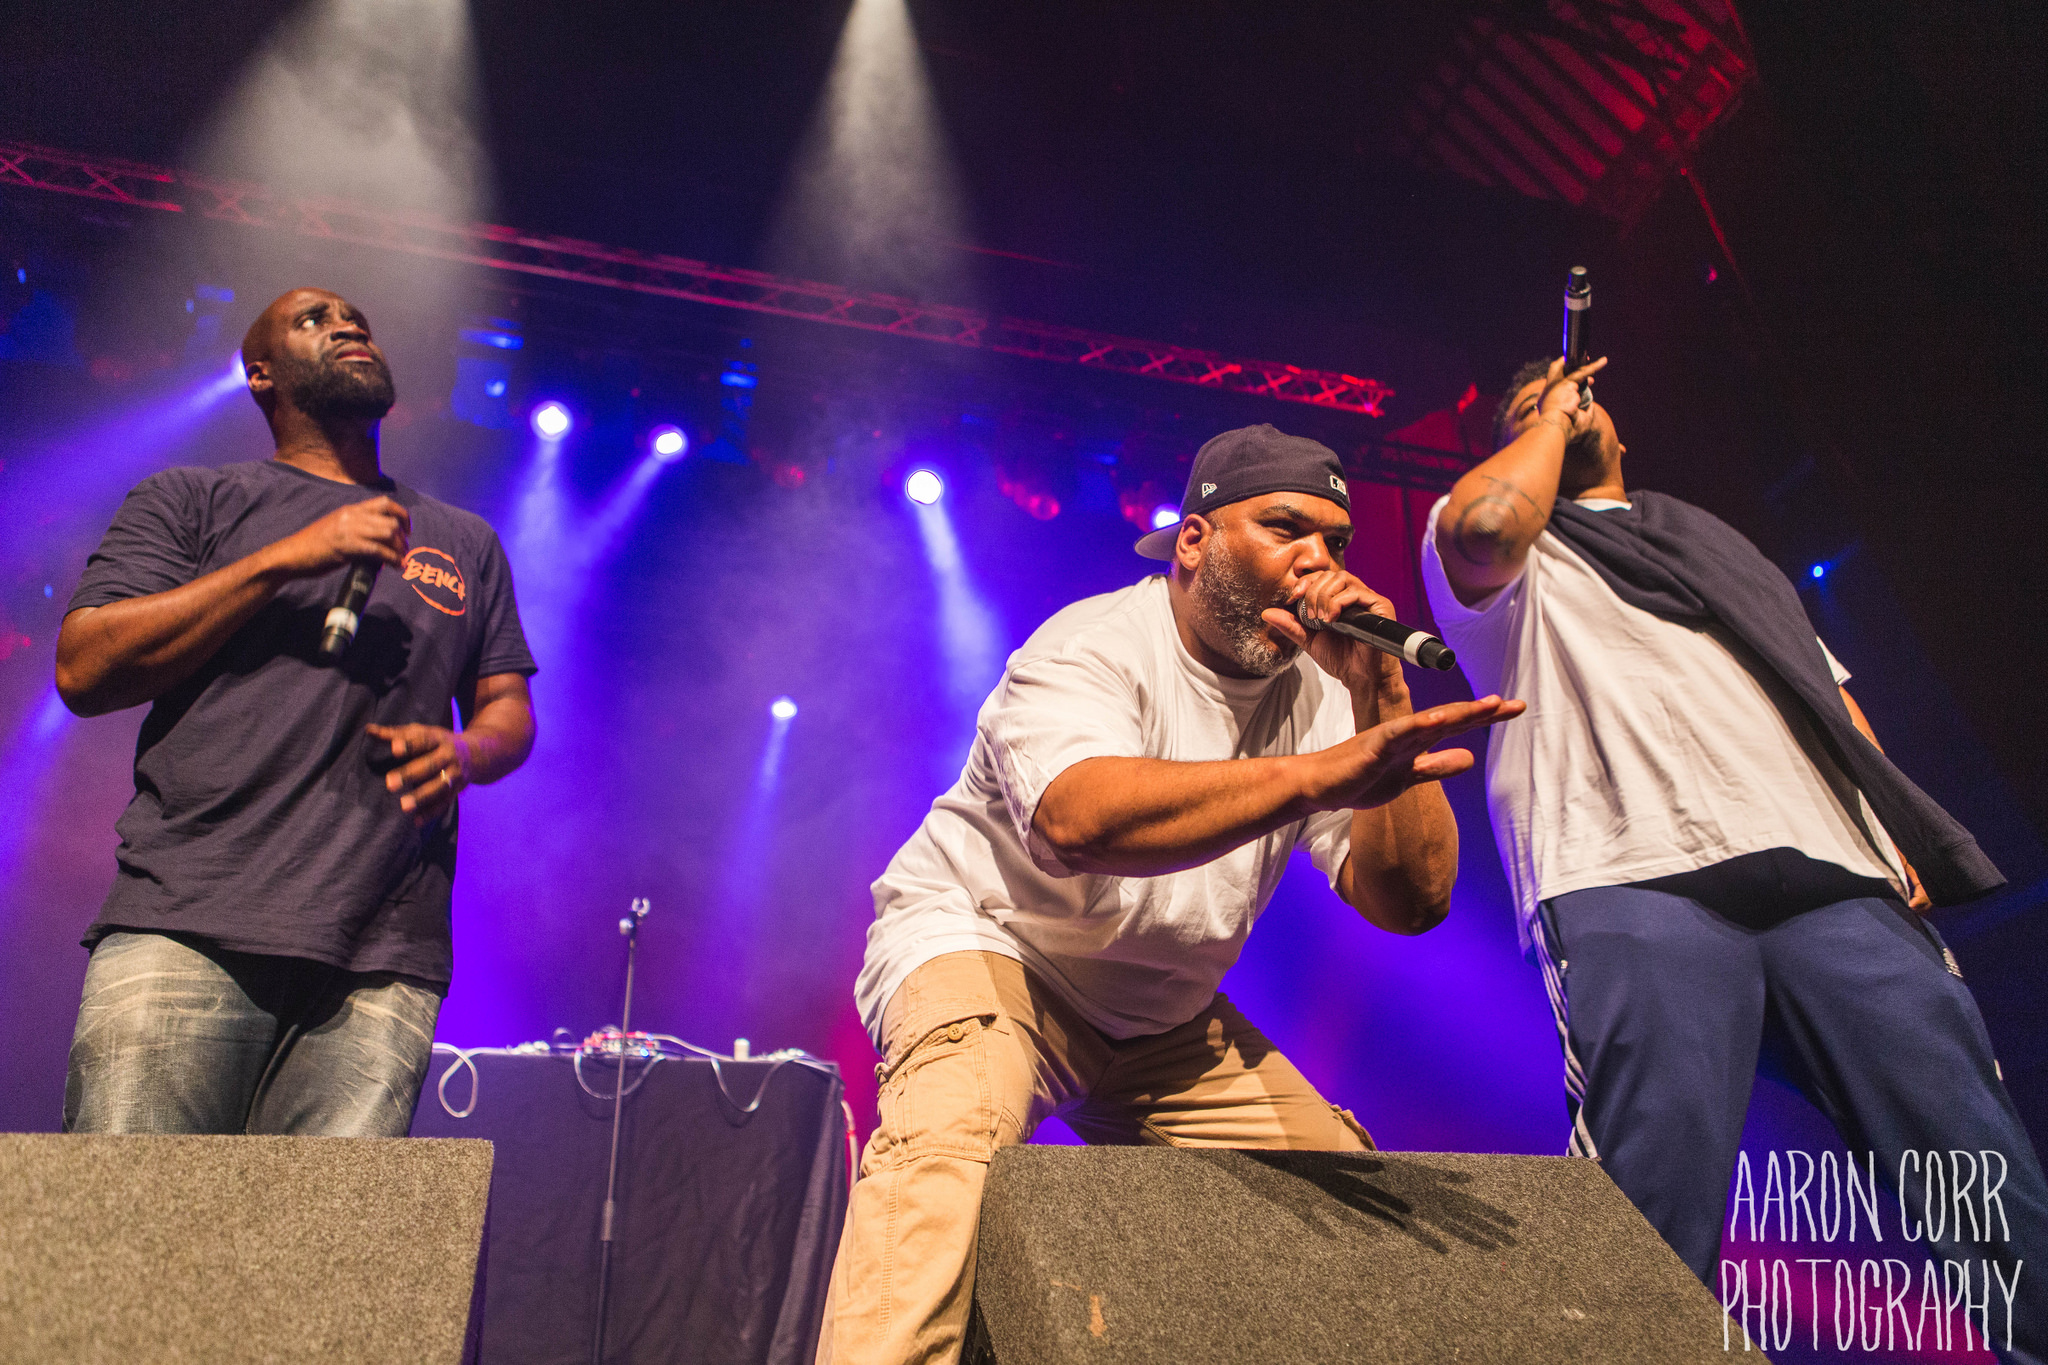 My first gig of June was the beloved hip hop group De La Soul. The guys were fun to shoot, animated, walking the length and breadth of the stage and giving some good poses for the cameras. The lights were consistent, the only problem often being when a band member was too close to the front, by the sides of the stage and were in shadow. The most confusing part was when all the photographers would look at each other in between a song wondering if we had covered the first three songs or not, because everything bled into one another early in the set. Overall they were a great band to shoot.